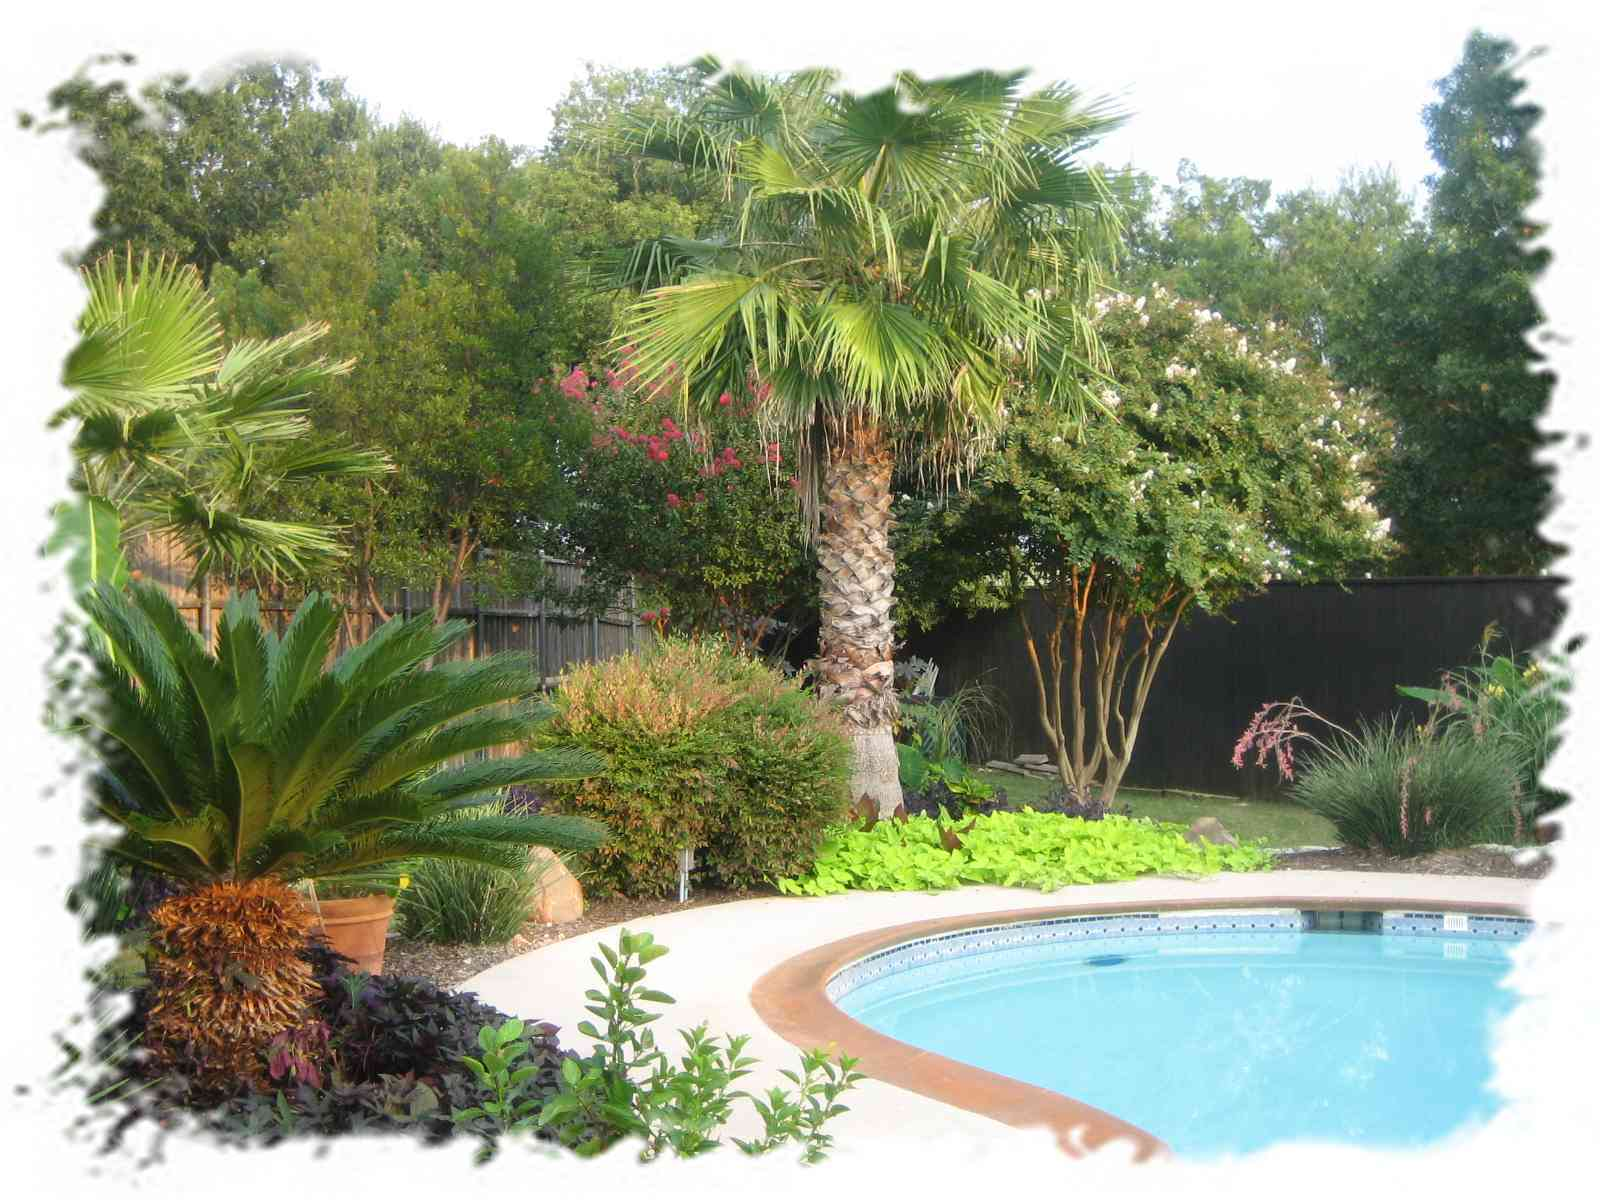 Pool landscaping ideas to add tremendous value to you home for Pool garden ideas